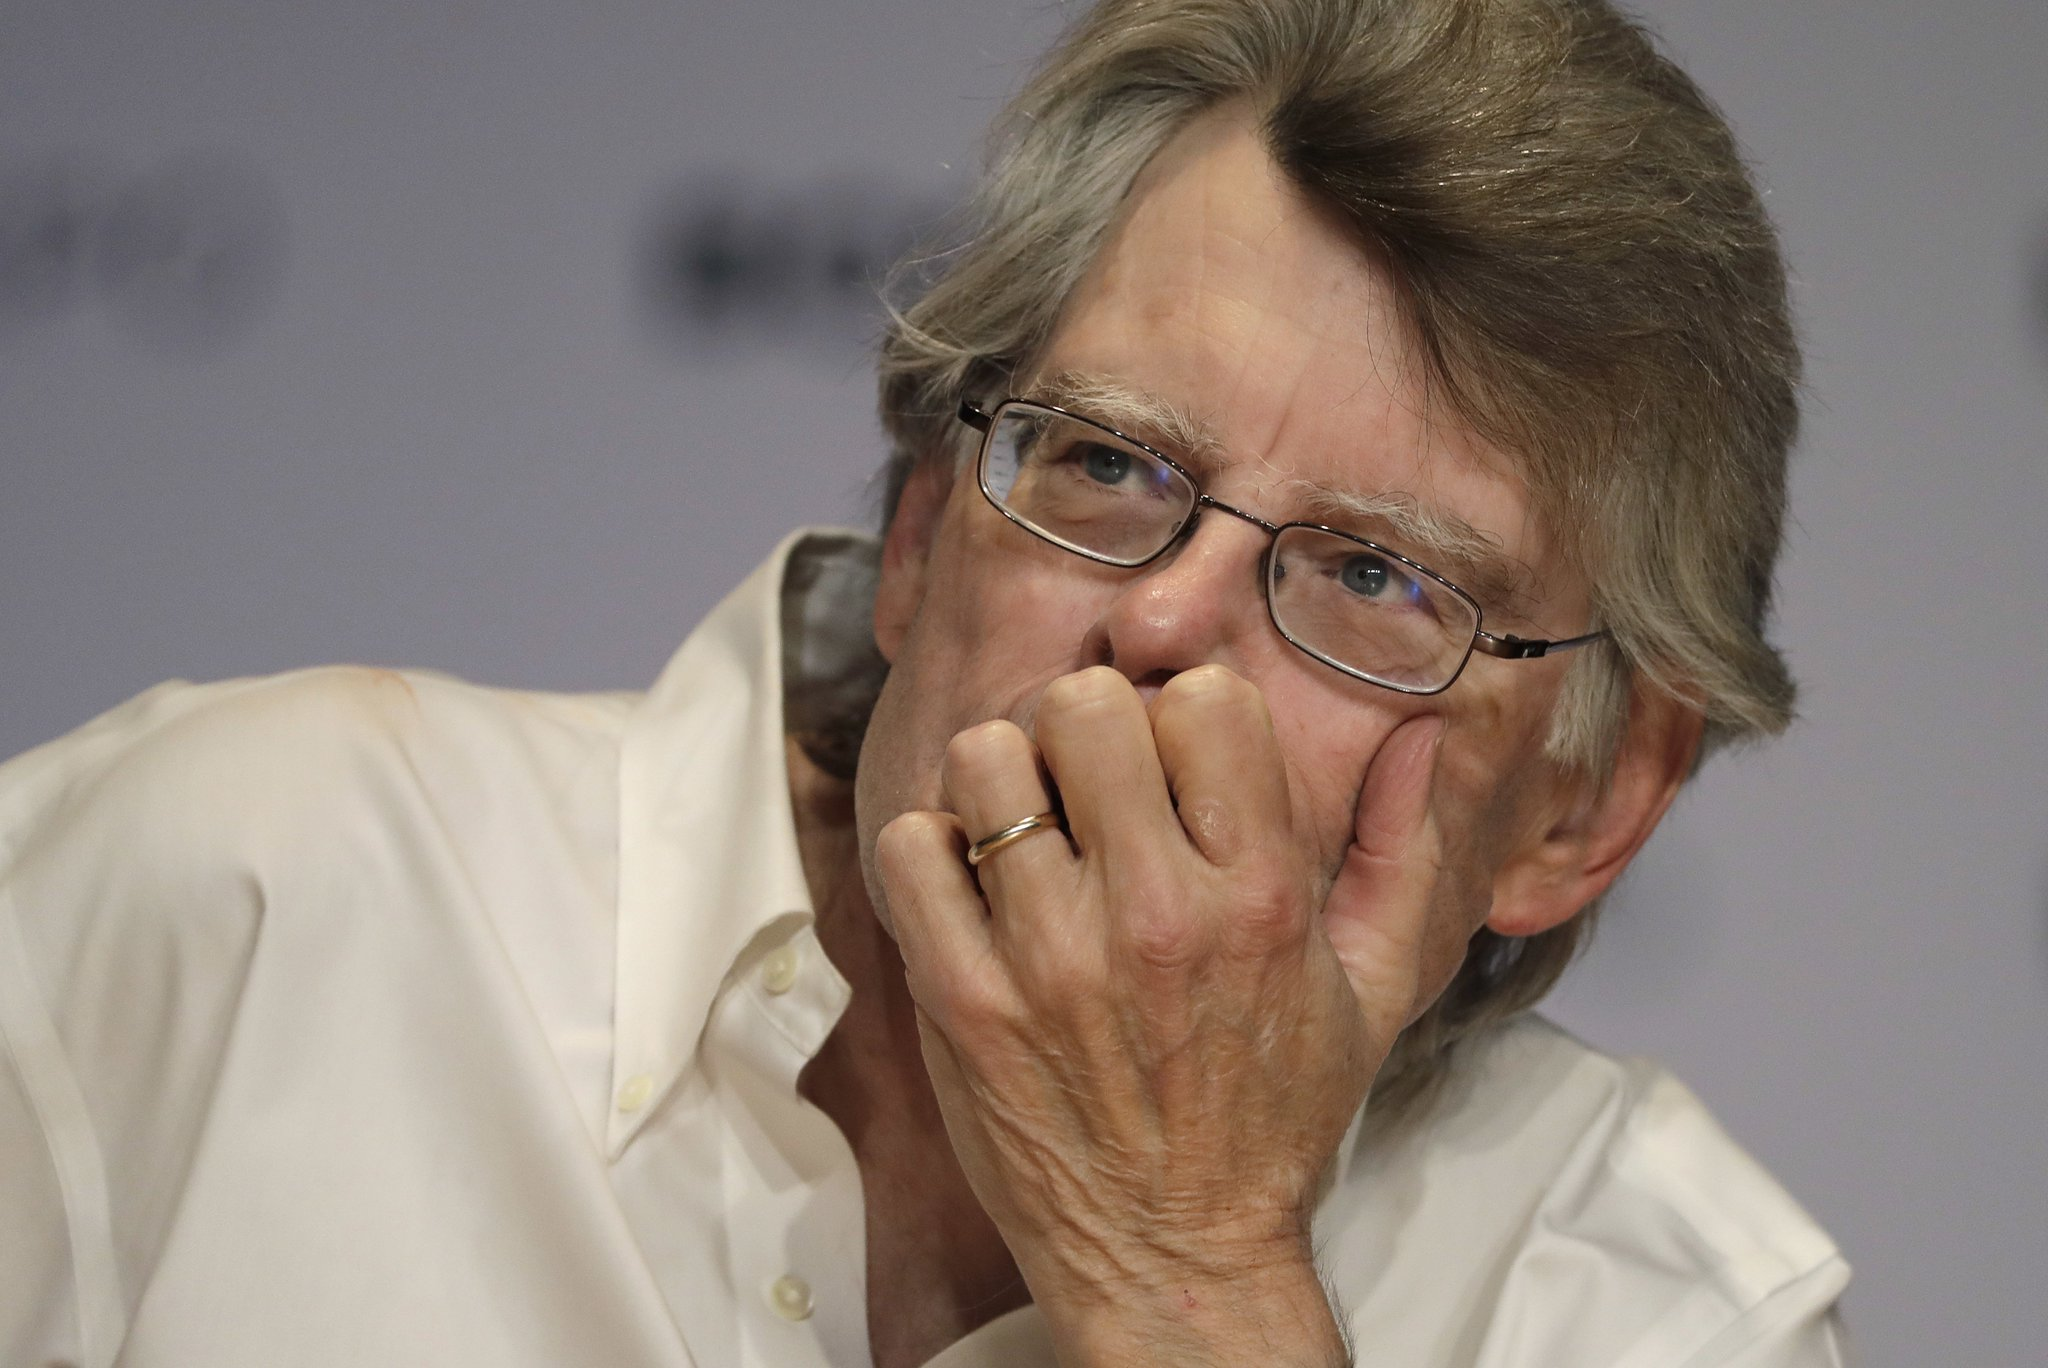 Even the king of horror gets scared sometimes: @StephenKing reveals his biggest fears https://t.co/xkG57MyELL https://t.co/BEoxyNNUGo